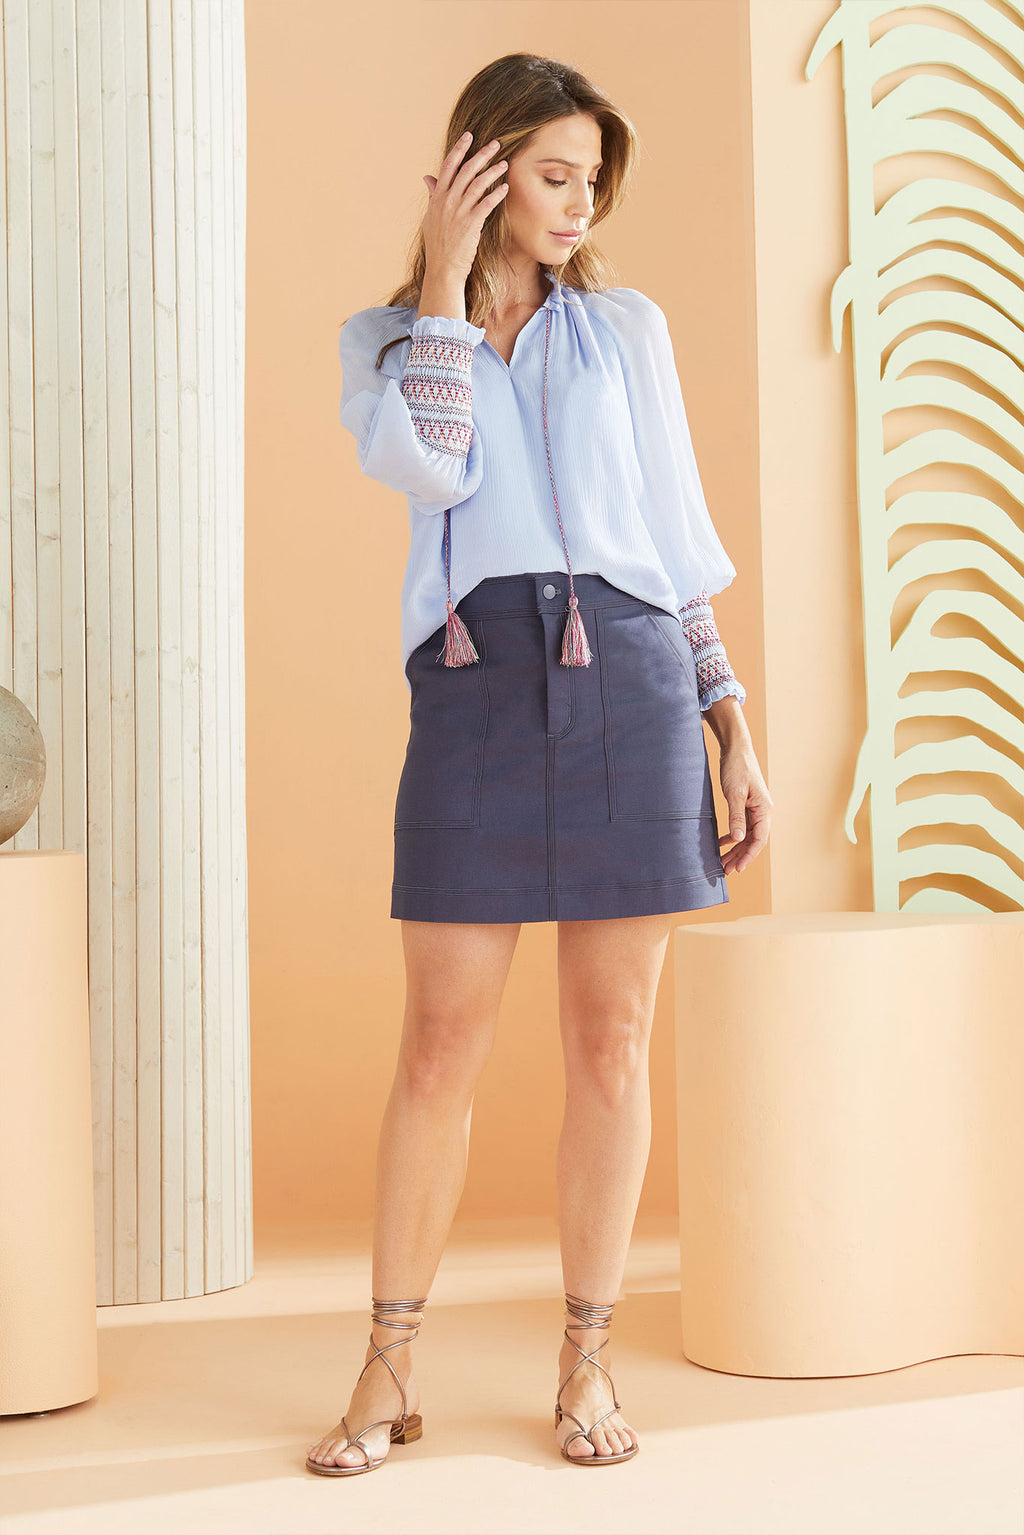 Carmen Blouse in Periwinkle worn with the Braden Skirt in Slate.